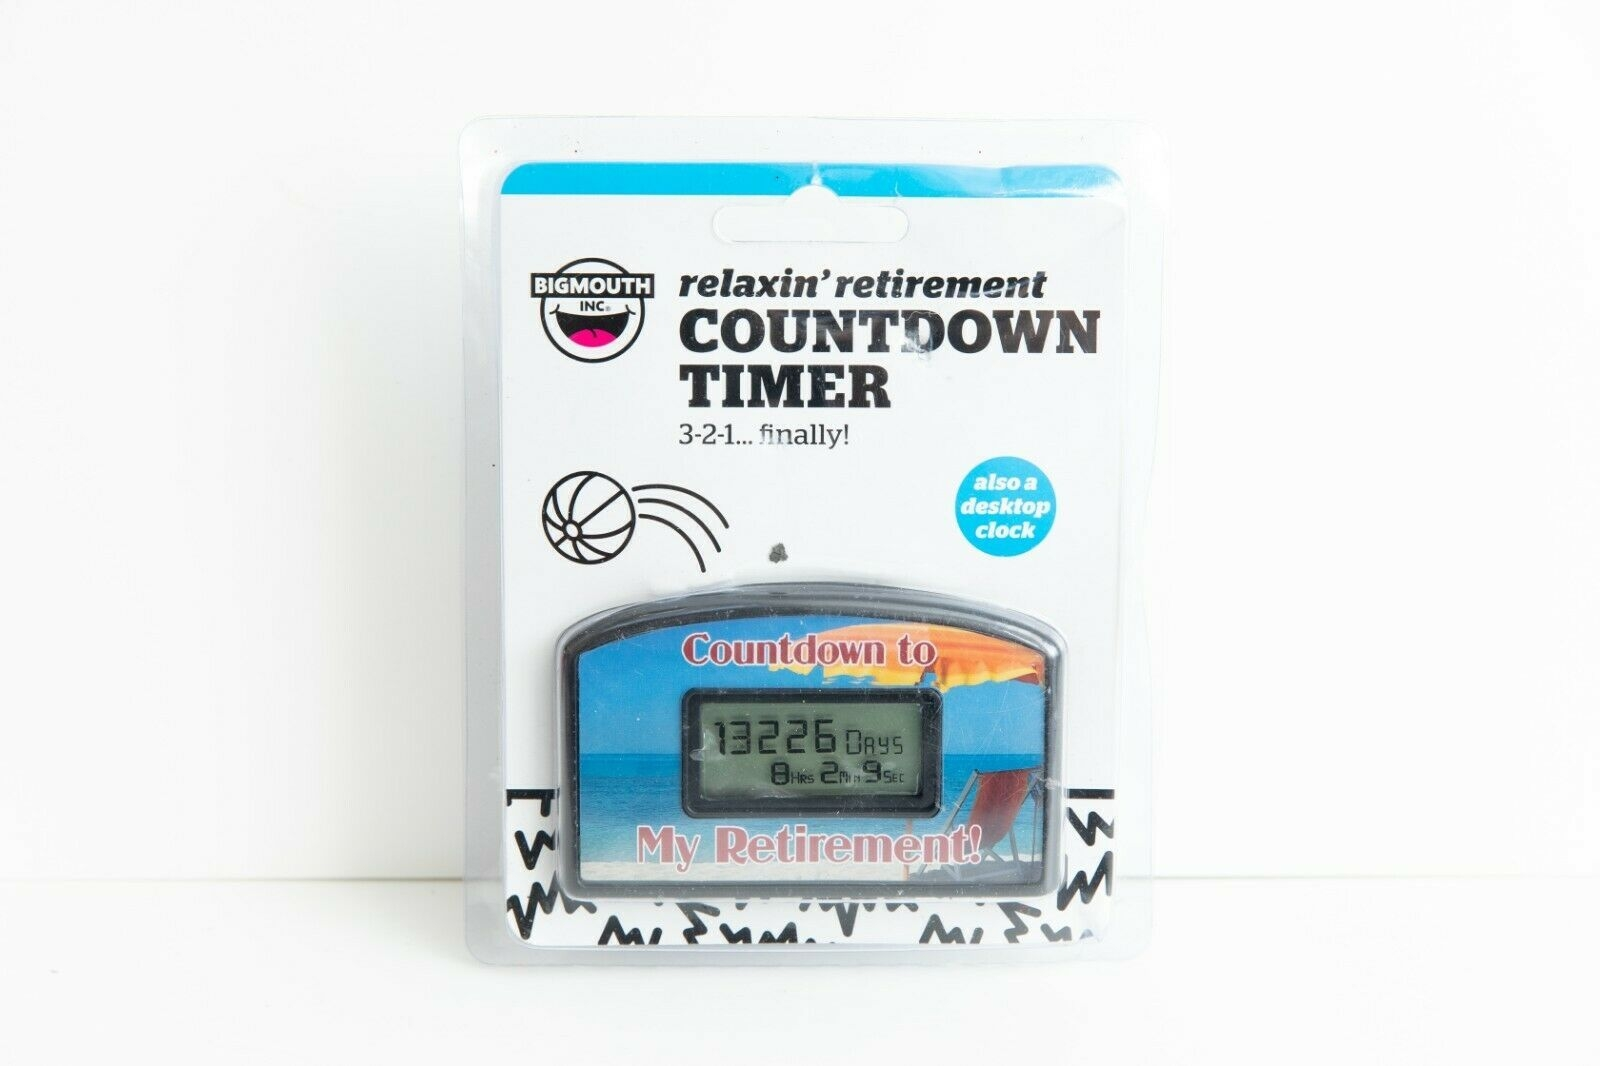 bigmouth inc countdown timer relaxin' retirement red chair